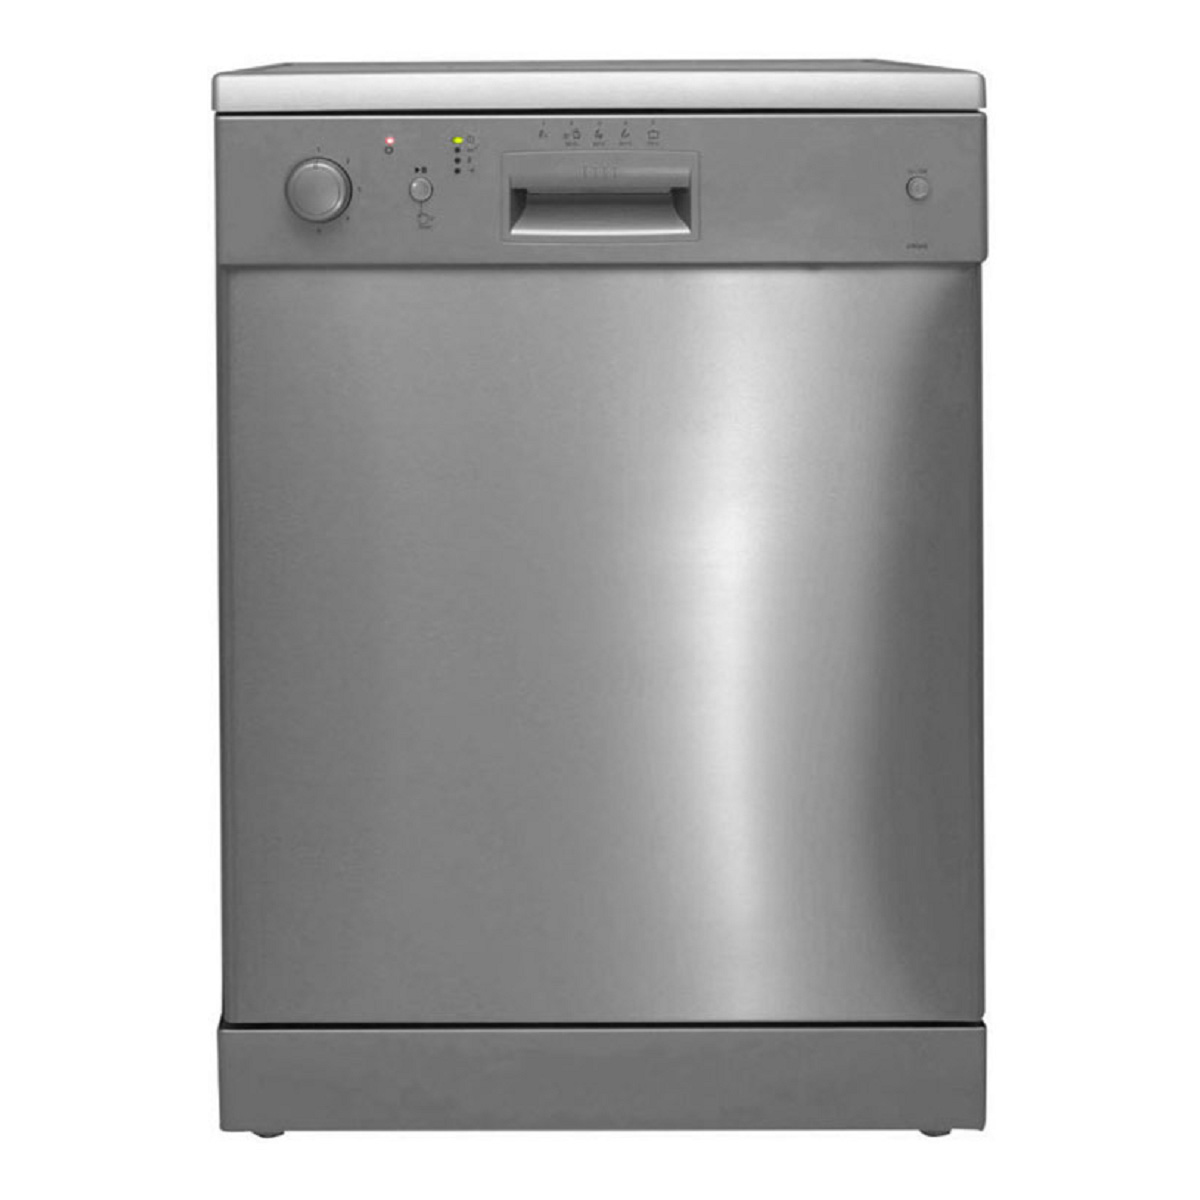 Arc AD14S 60cm Freestanding Dishwasher